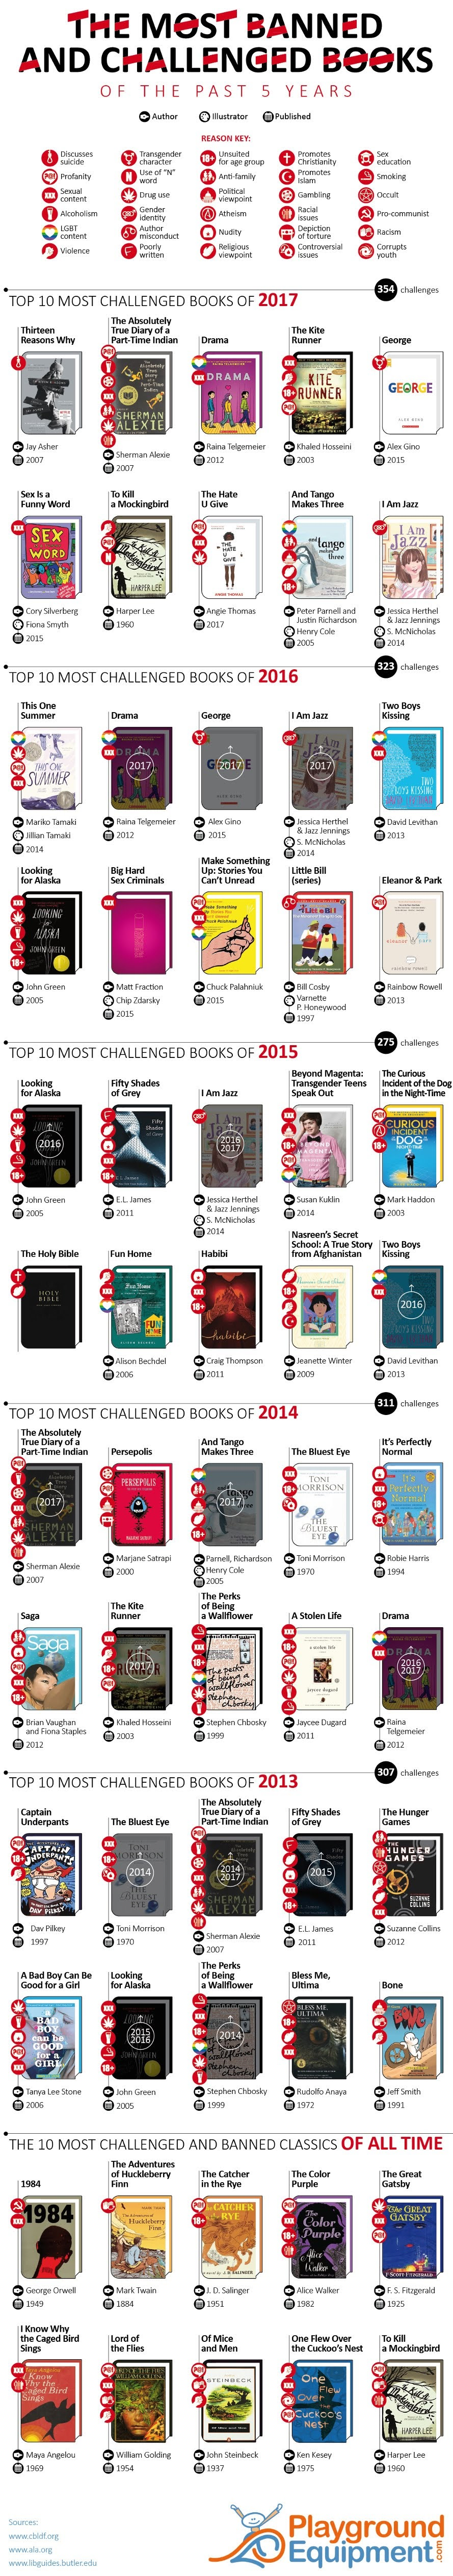 The Never-Ending Saga of Book Banning: Books Banned from 2013-2017 #Infographic